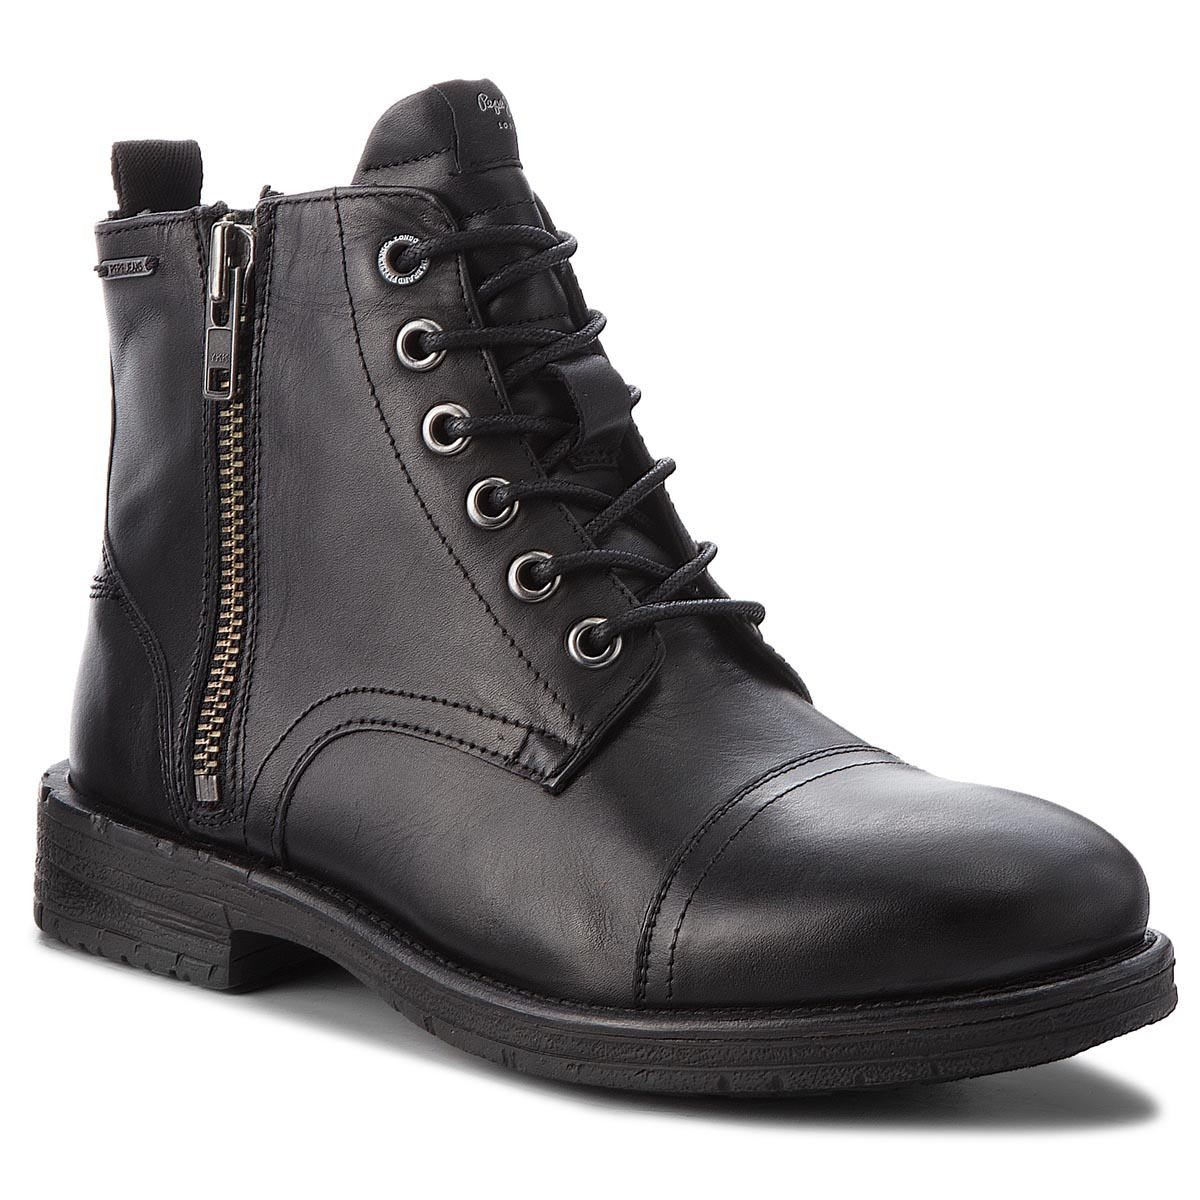 Cizme PEPE JEANS - Tom-Cut Med Boot PMS50163 Black 999